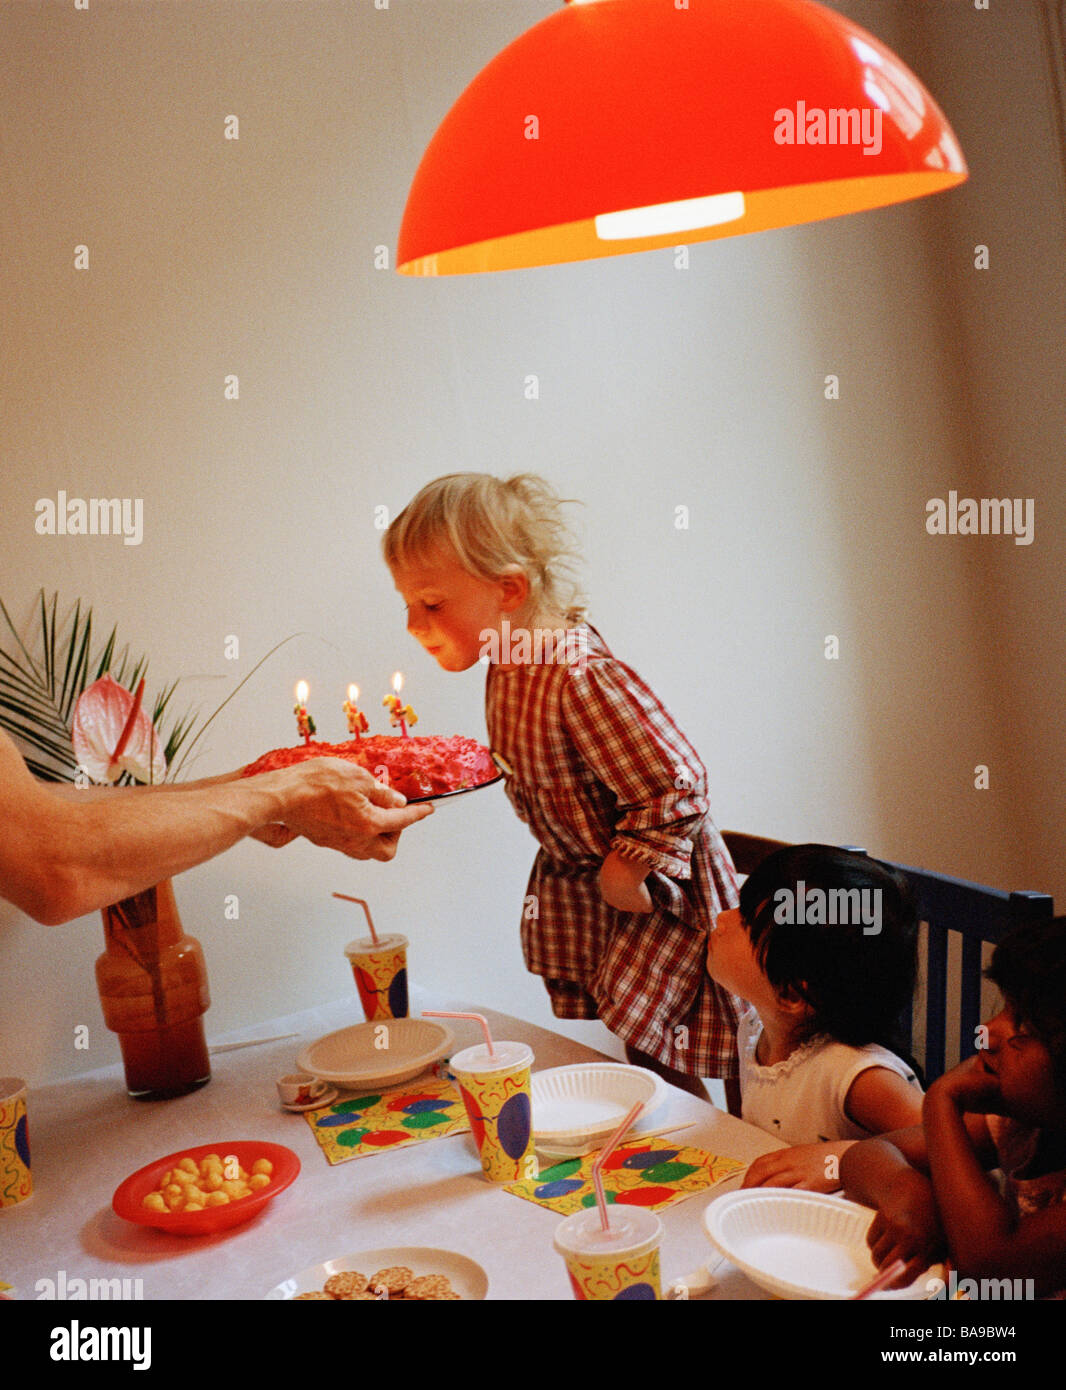 A three years old girl having a birthday party, Sweden. - Stock Image